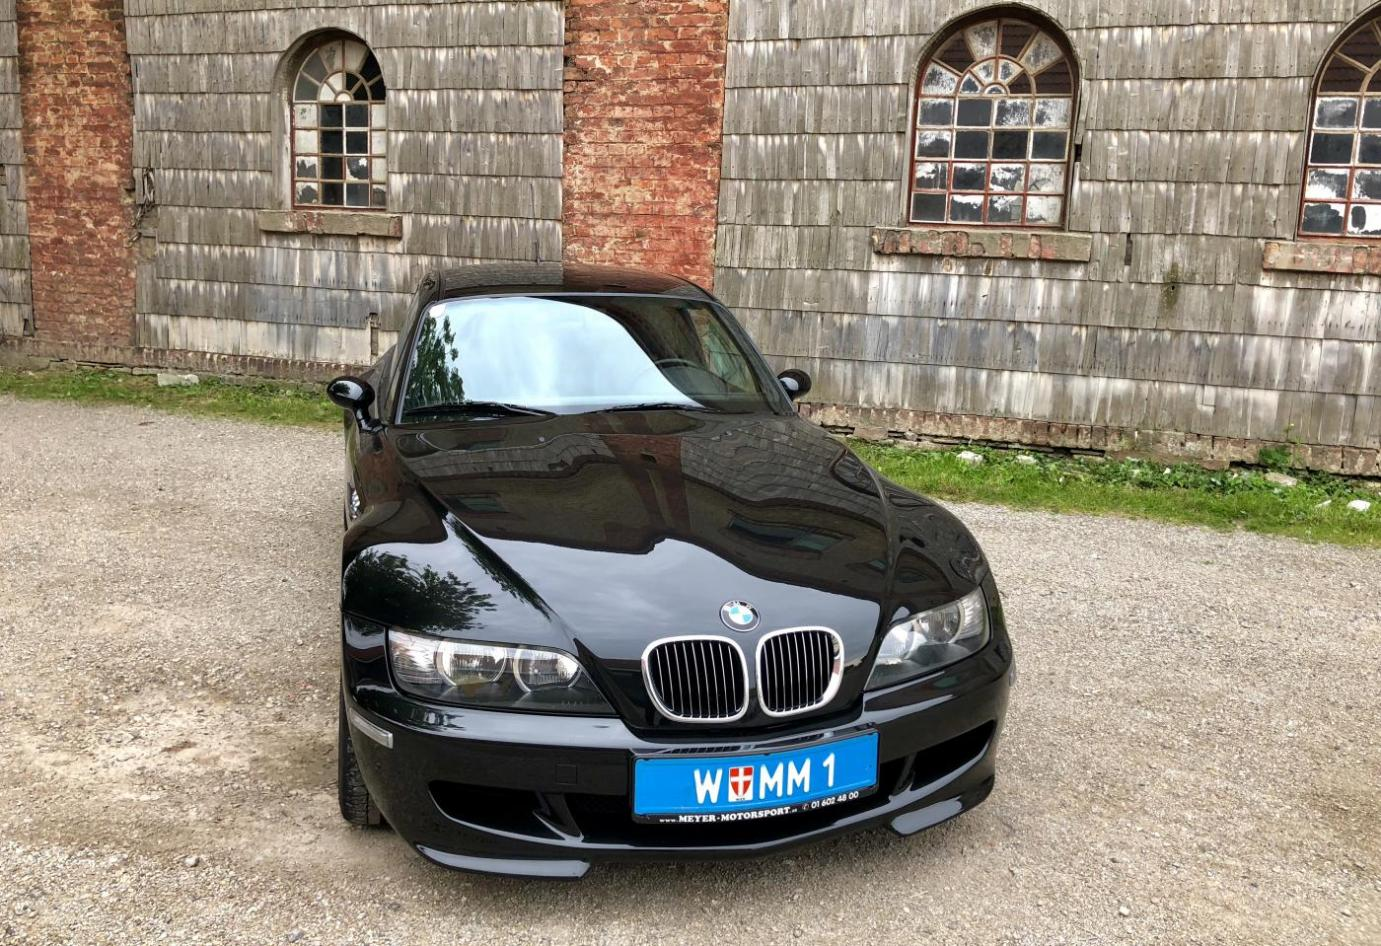 BMW Z3 M COUPE S54